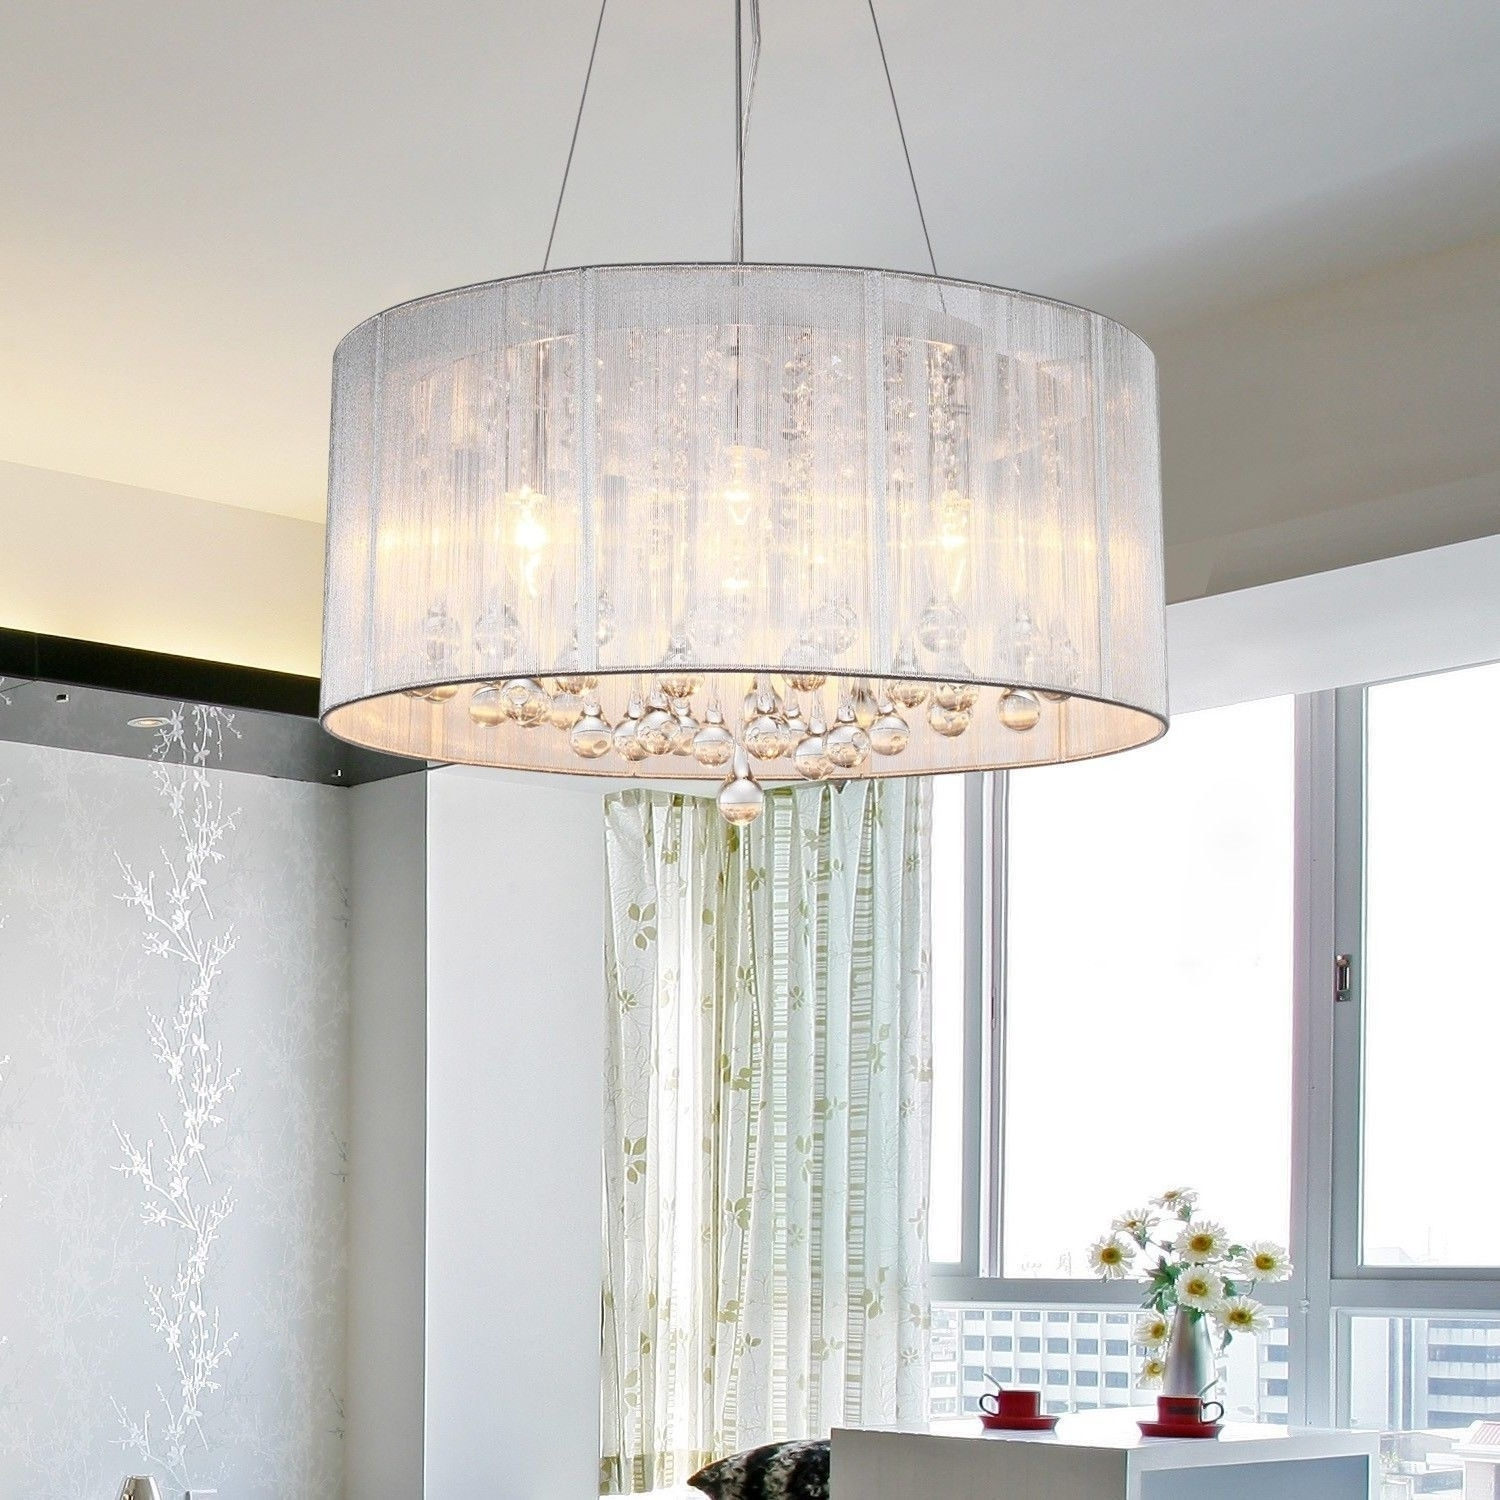 Lampshade Chandeliers Throughout Current Lamp Shades For Chandeliers Small : Lamp World (View 9 of 15)